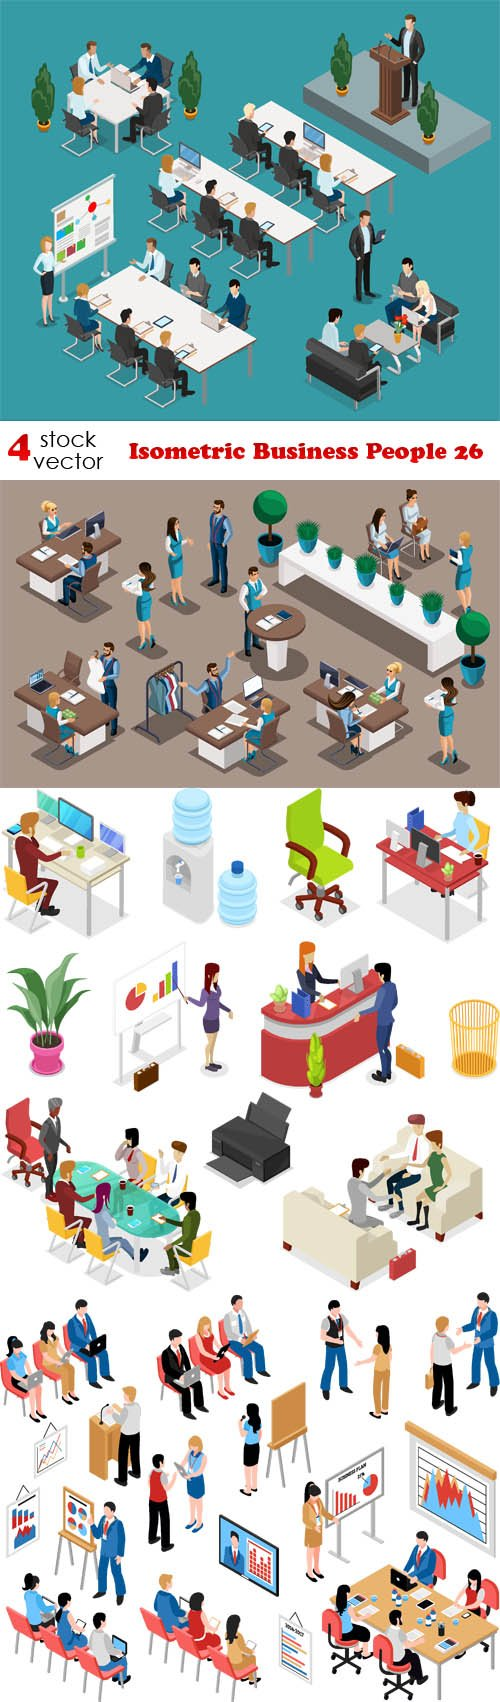 Vectors - Isometric Business People 26